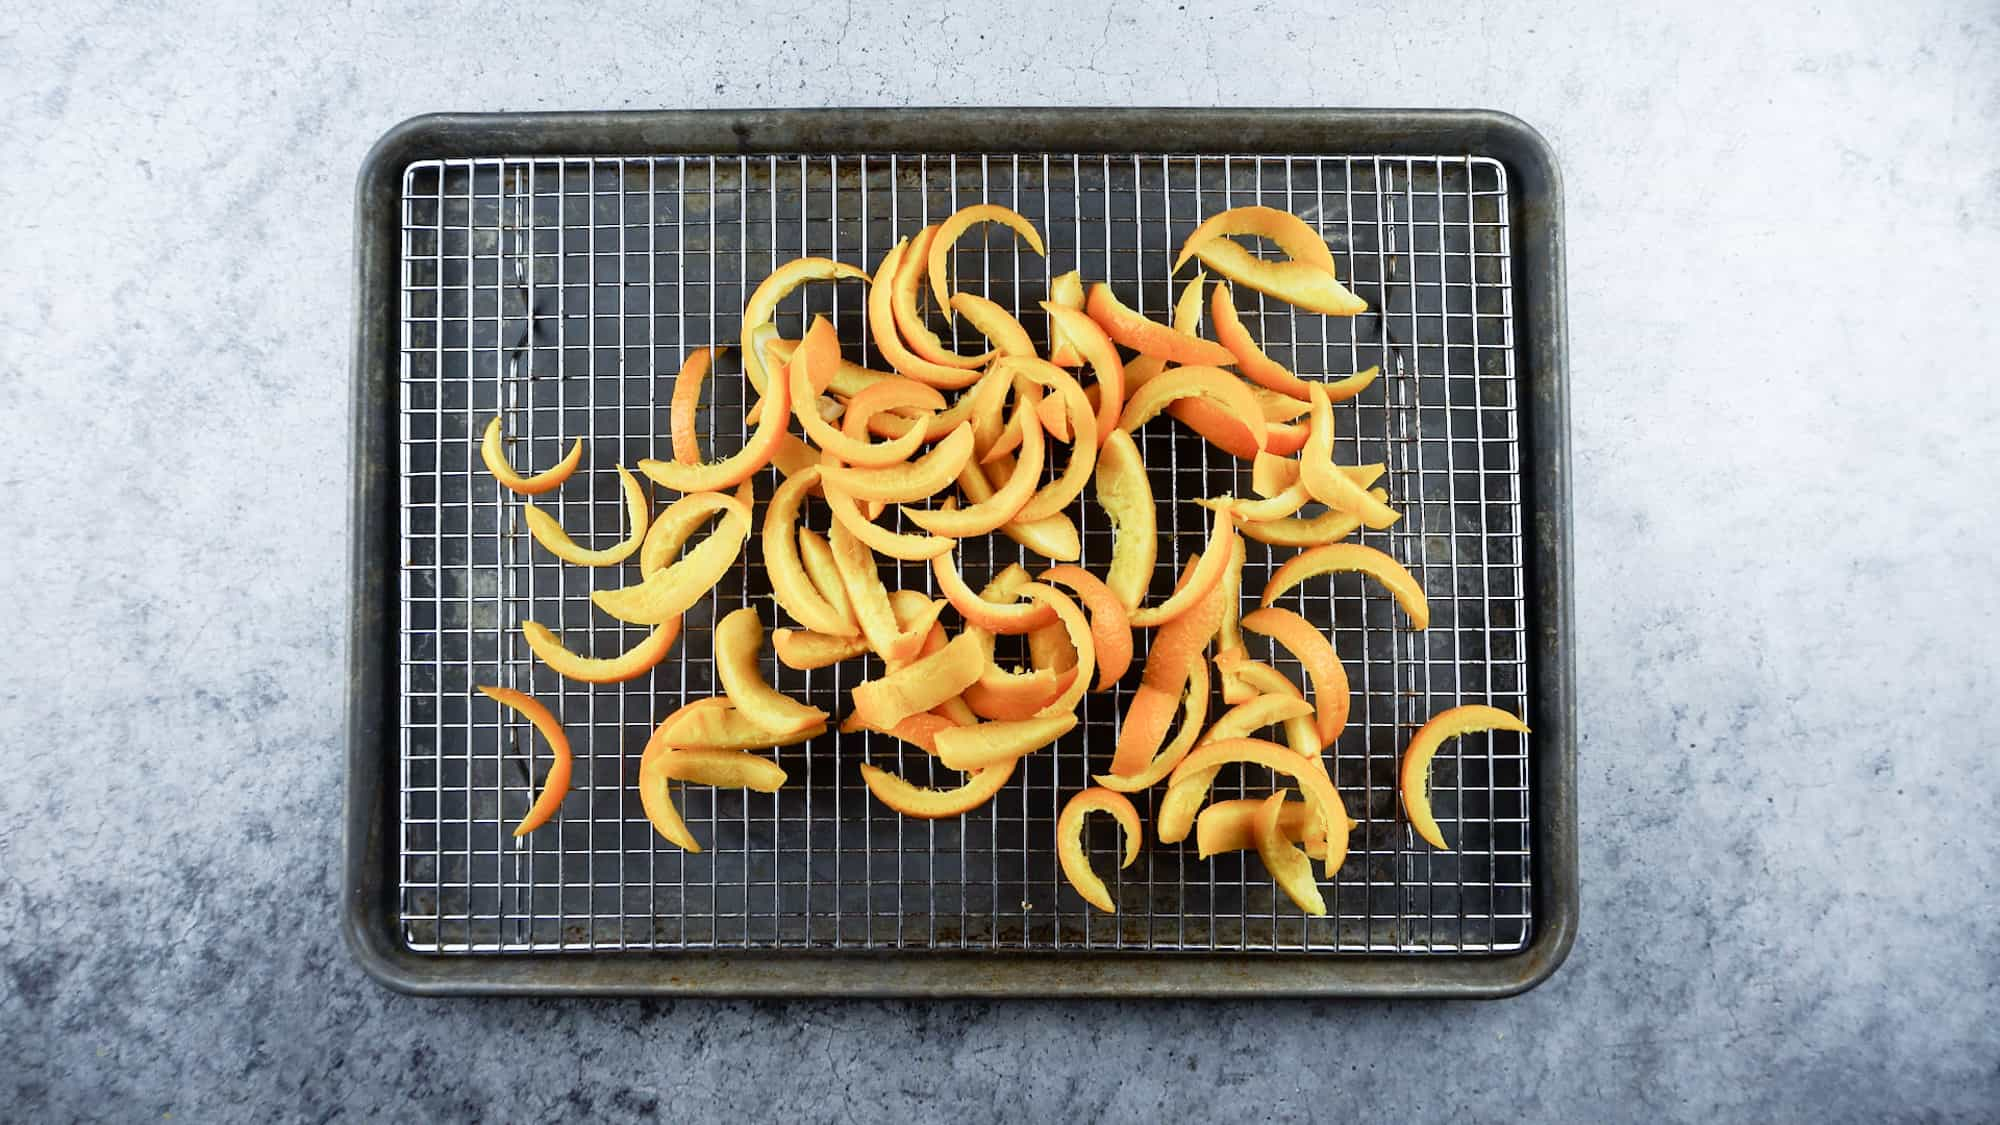 peels after first boil